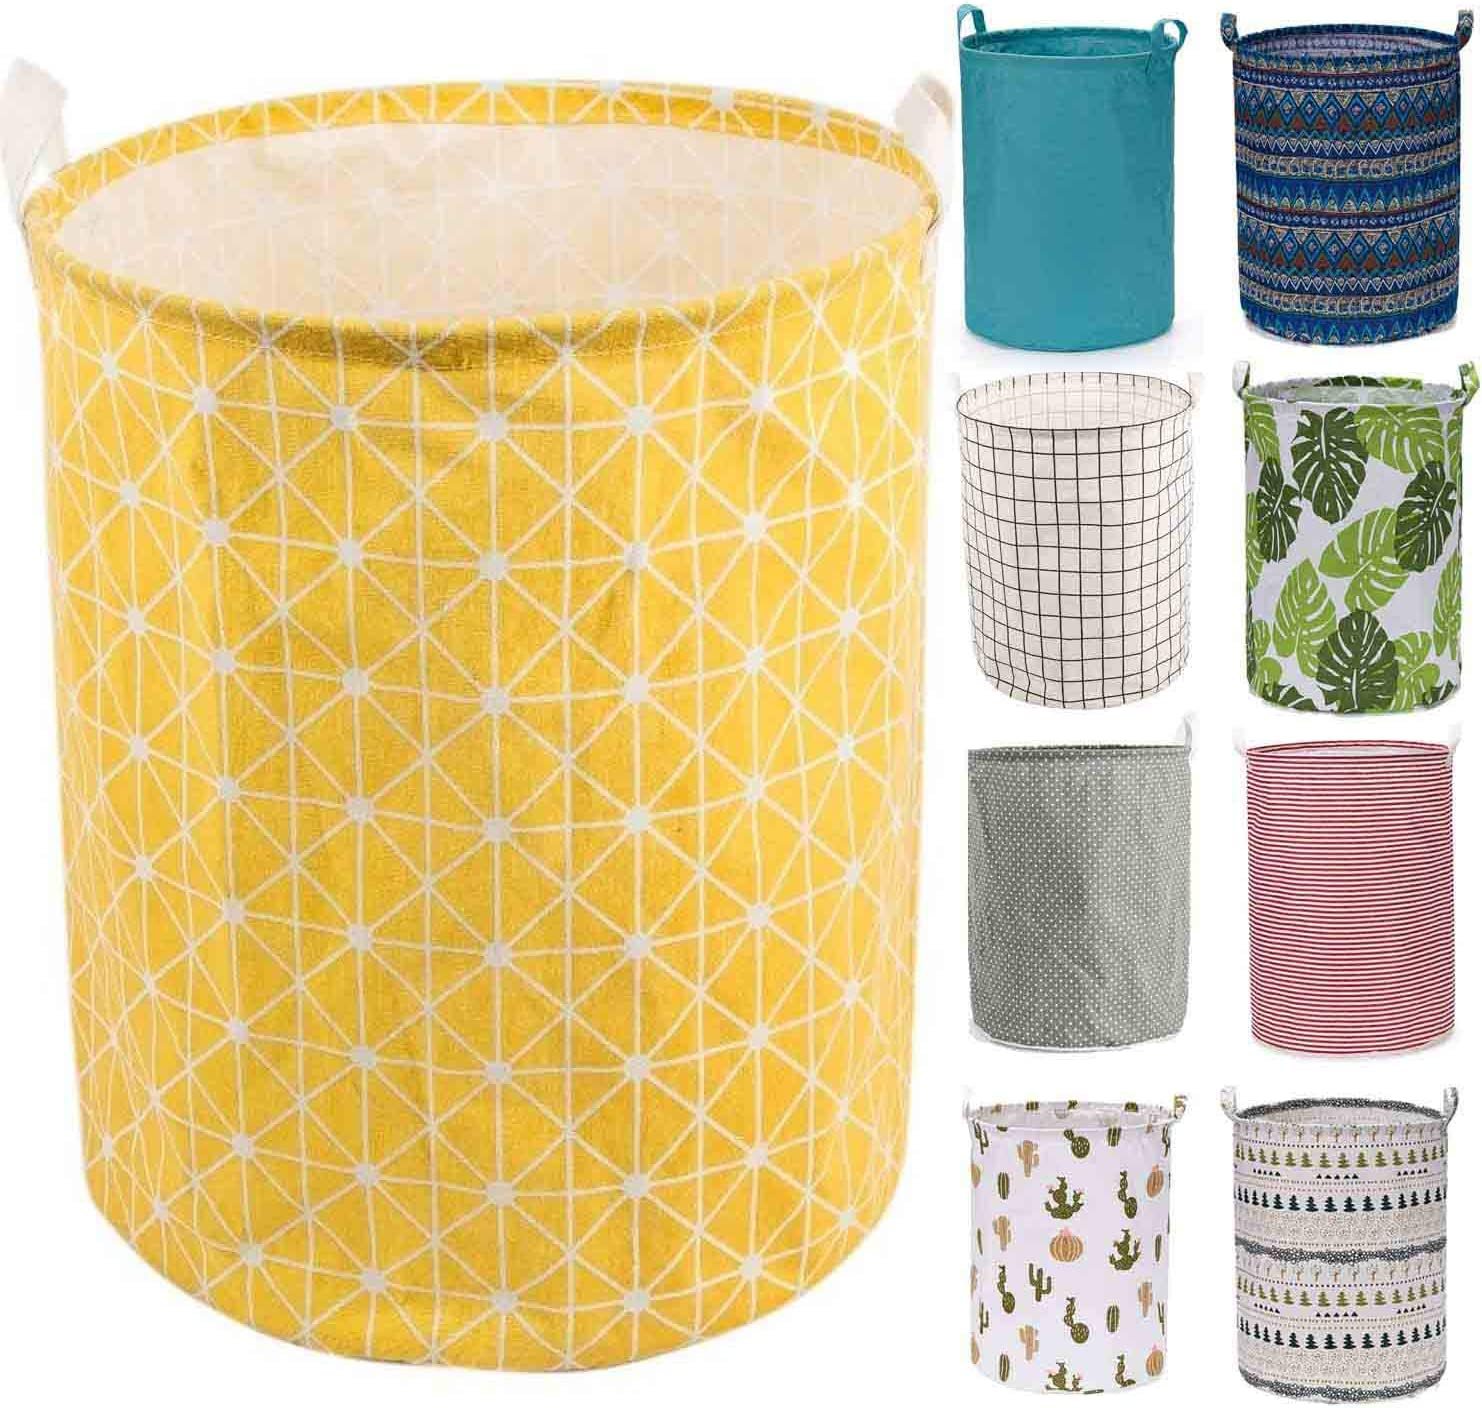 "Every Deco Cylinder Round Single Fabric Plastic Frame Laundry Basket Hamper Storage Bin Organization Collapsible Foldable Toys Clothes - 19.7"" H/Large - Yellow Geometric"